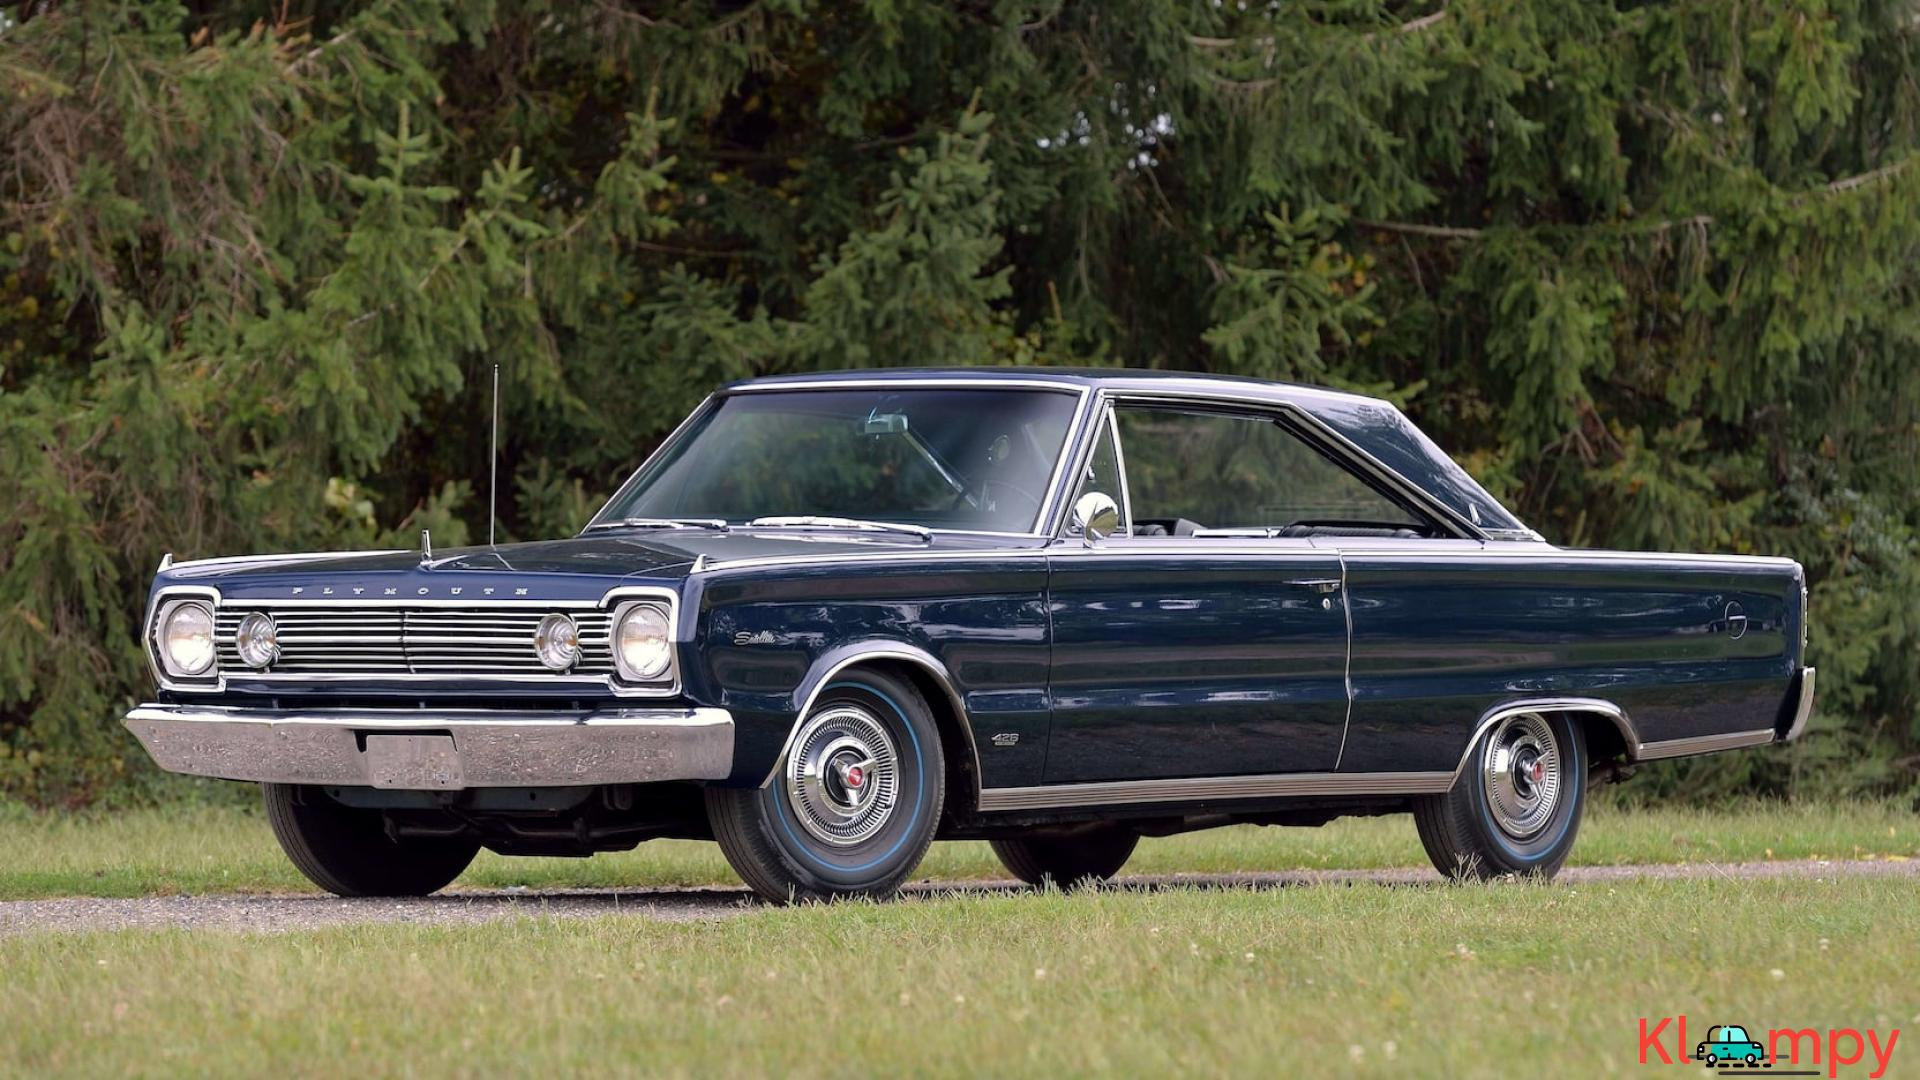 1966 Plymouth Satellite Original 426 CI - 2/18